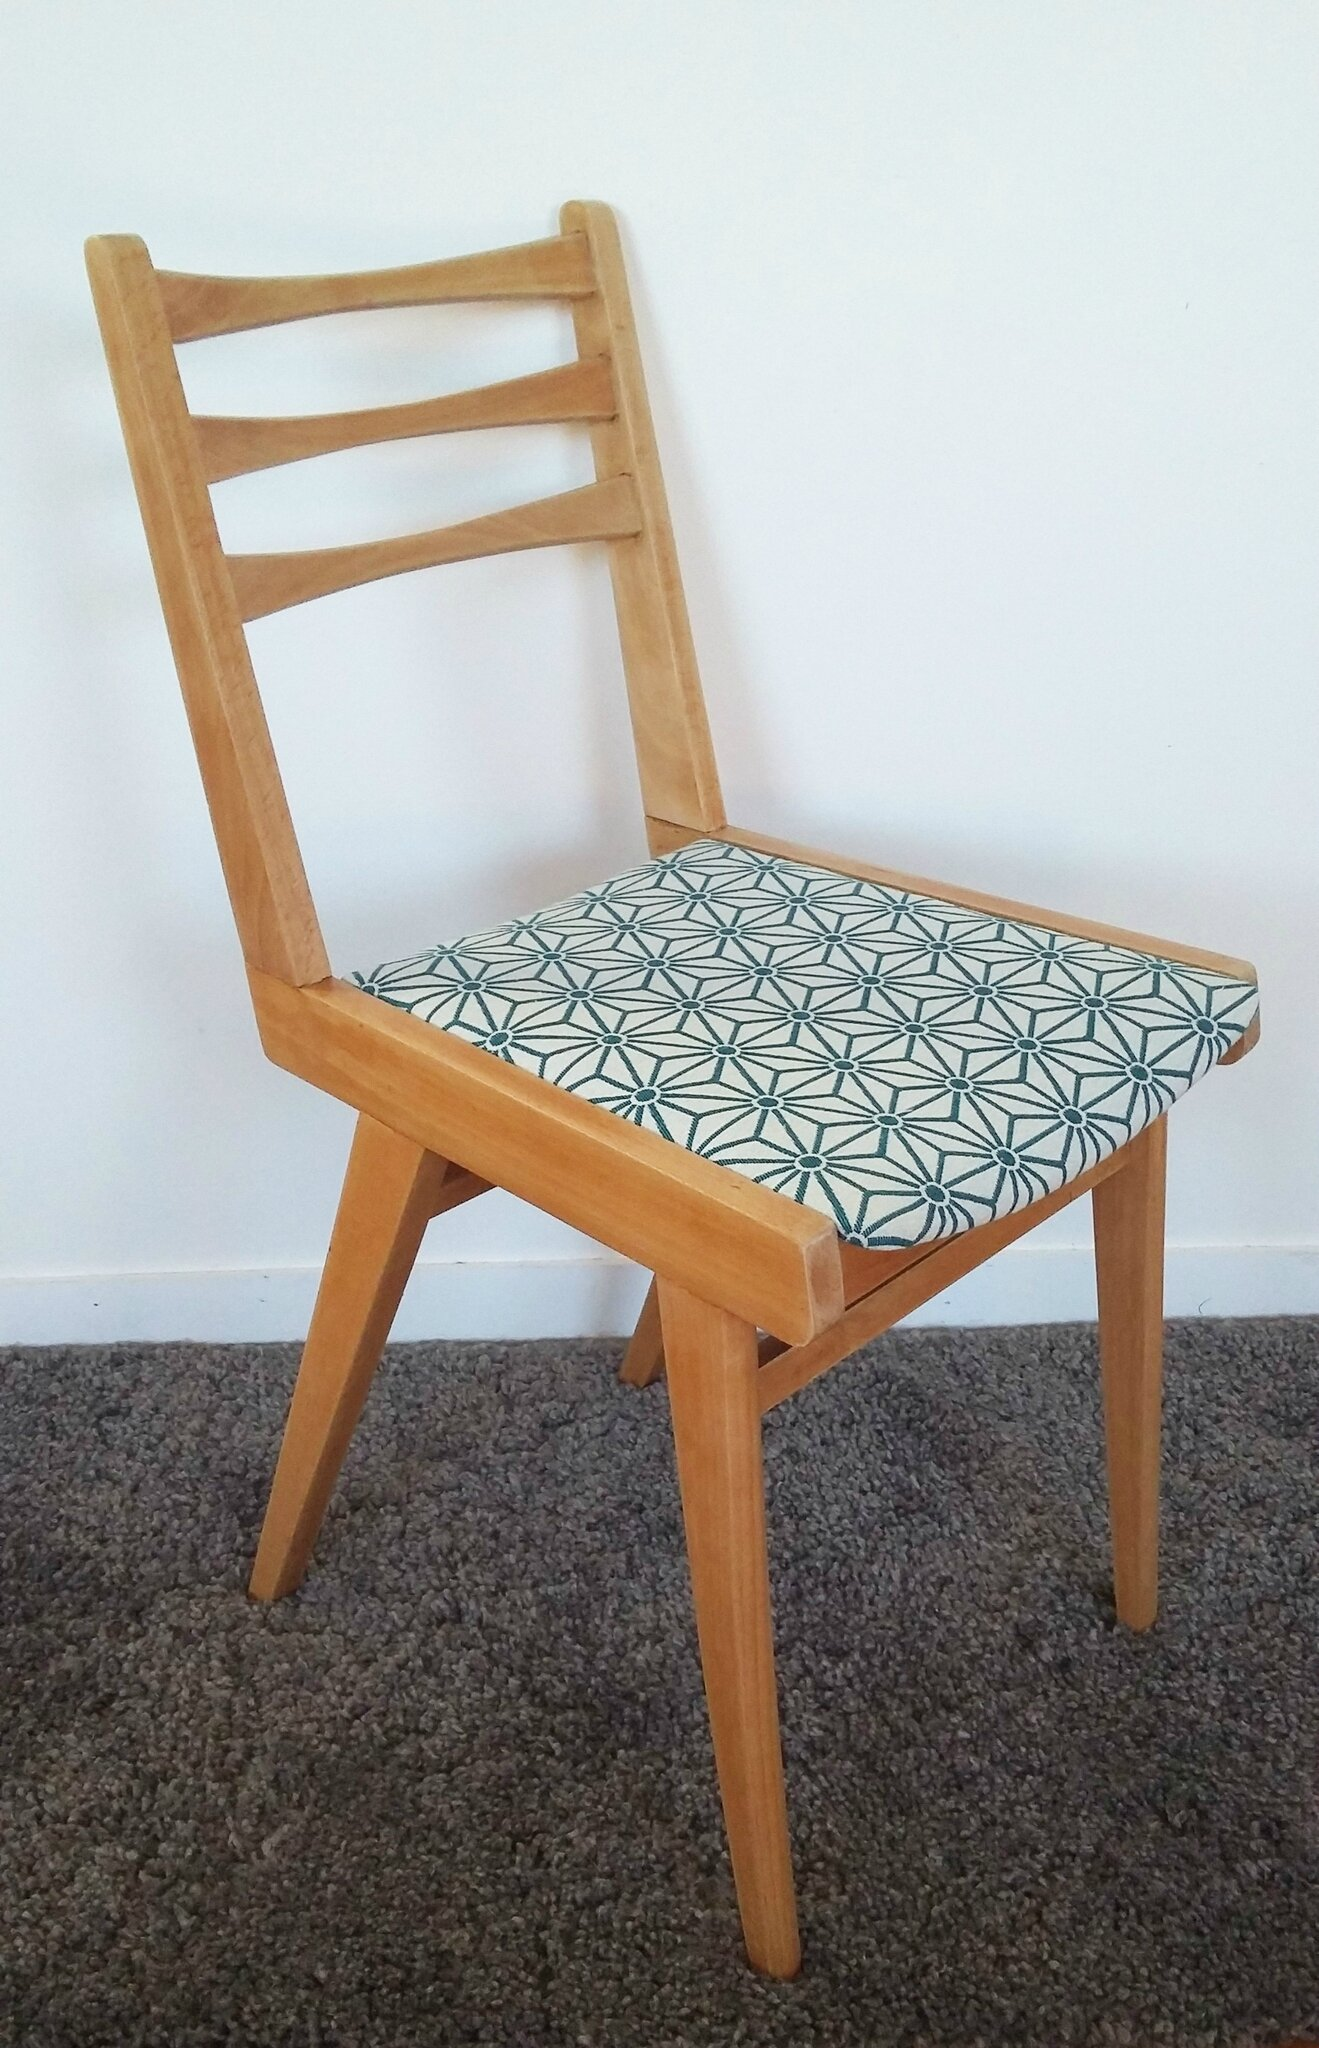 chaise vintage style scandinave tissus graphique - Chaise Vintage Scandinave